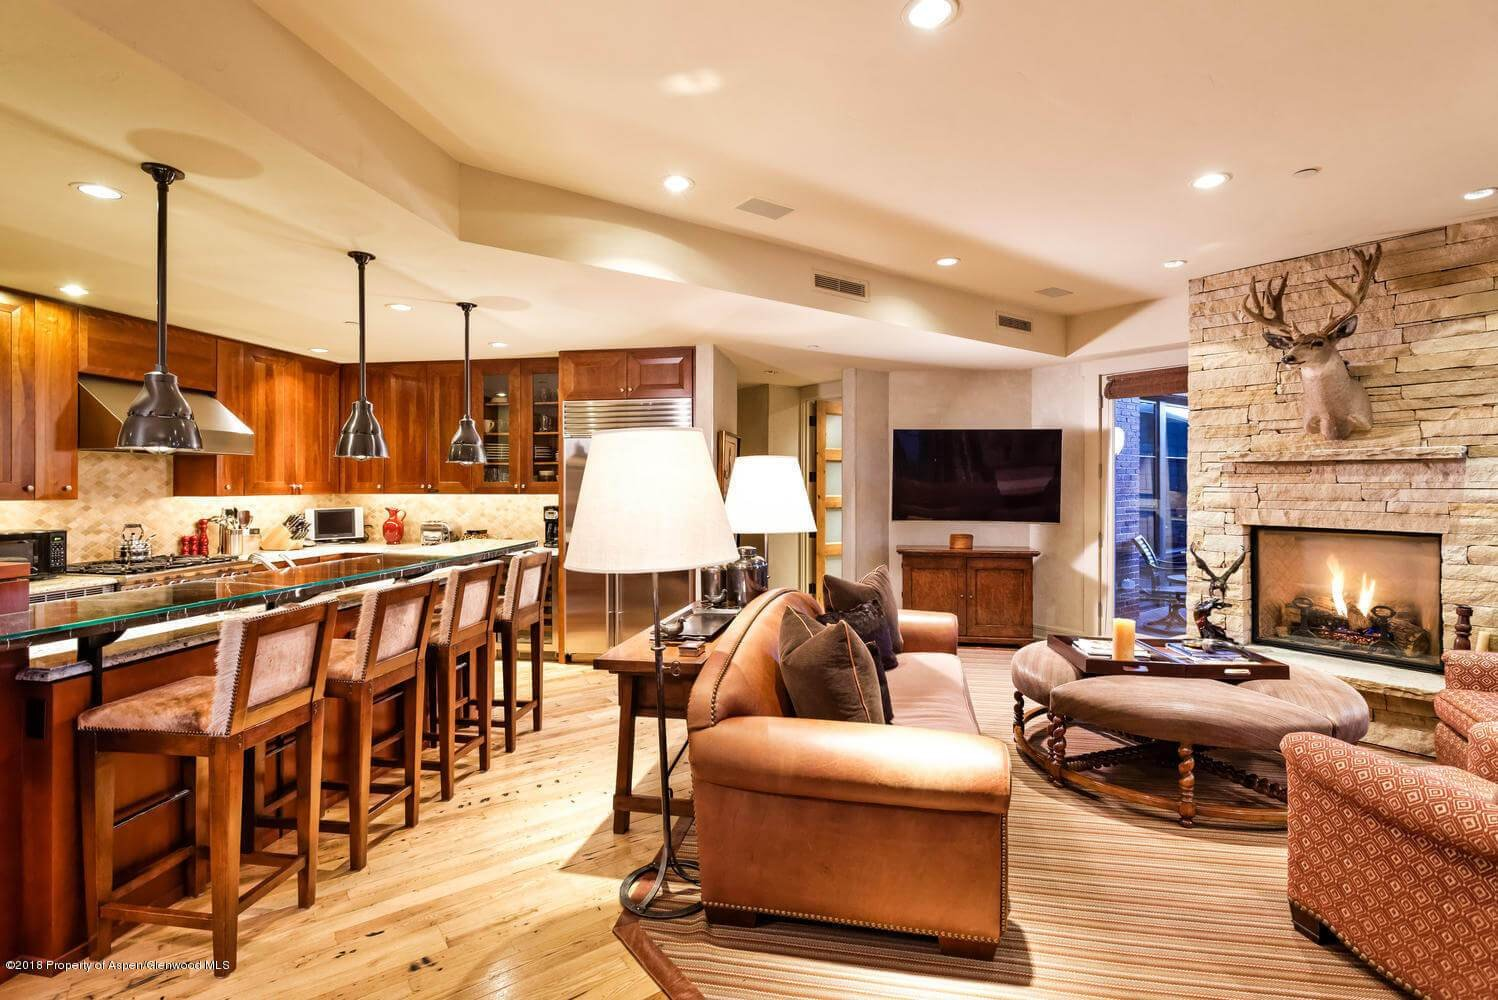 Obermeyer Place 3 Bdrm/3 Ba Aspen Condo Closes at $4.55M/$2,077 Sq Ft Image